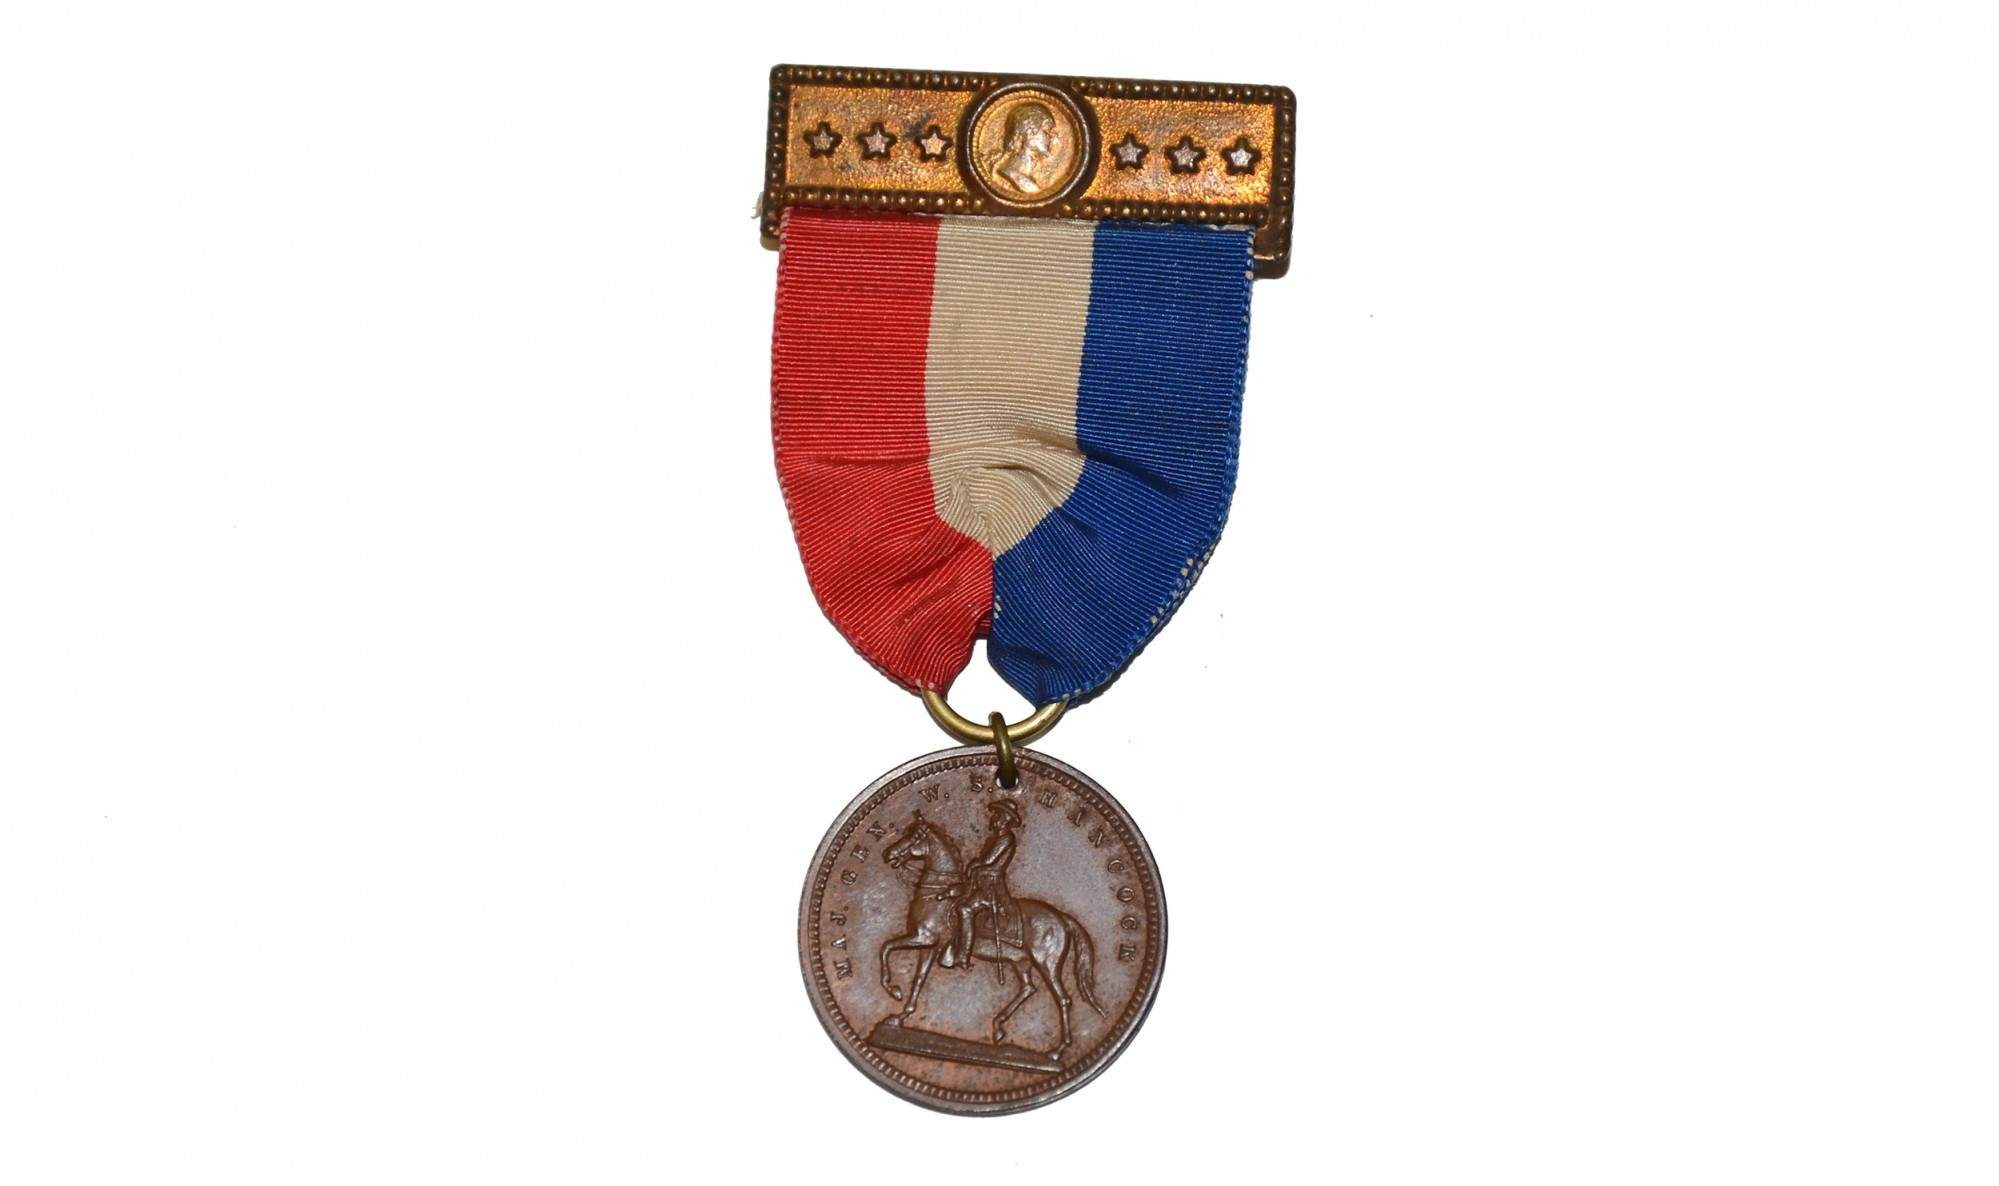 1896 MEDAL FOR GENERAL HANCOCK'S STATUE IN WASHINGTON, D.C.